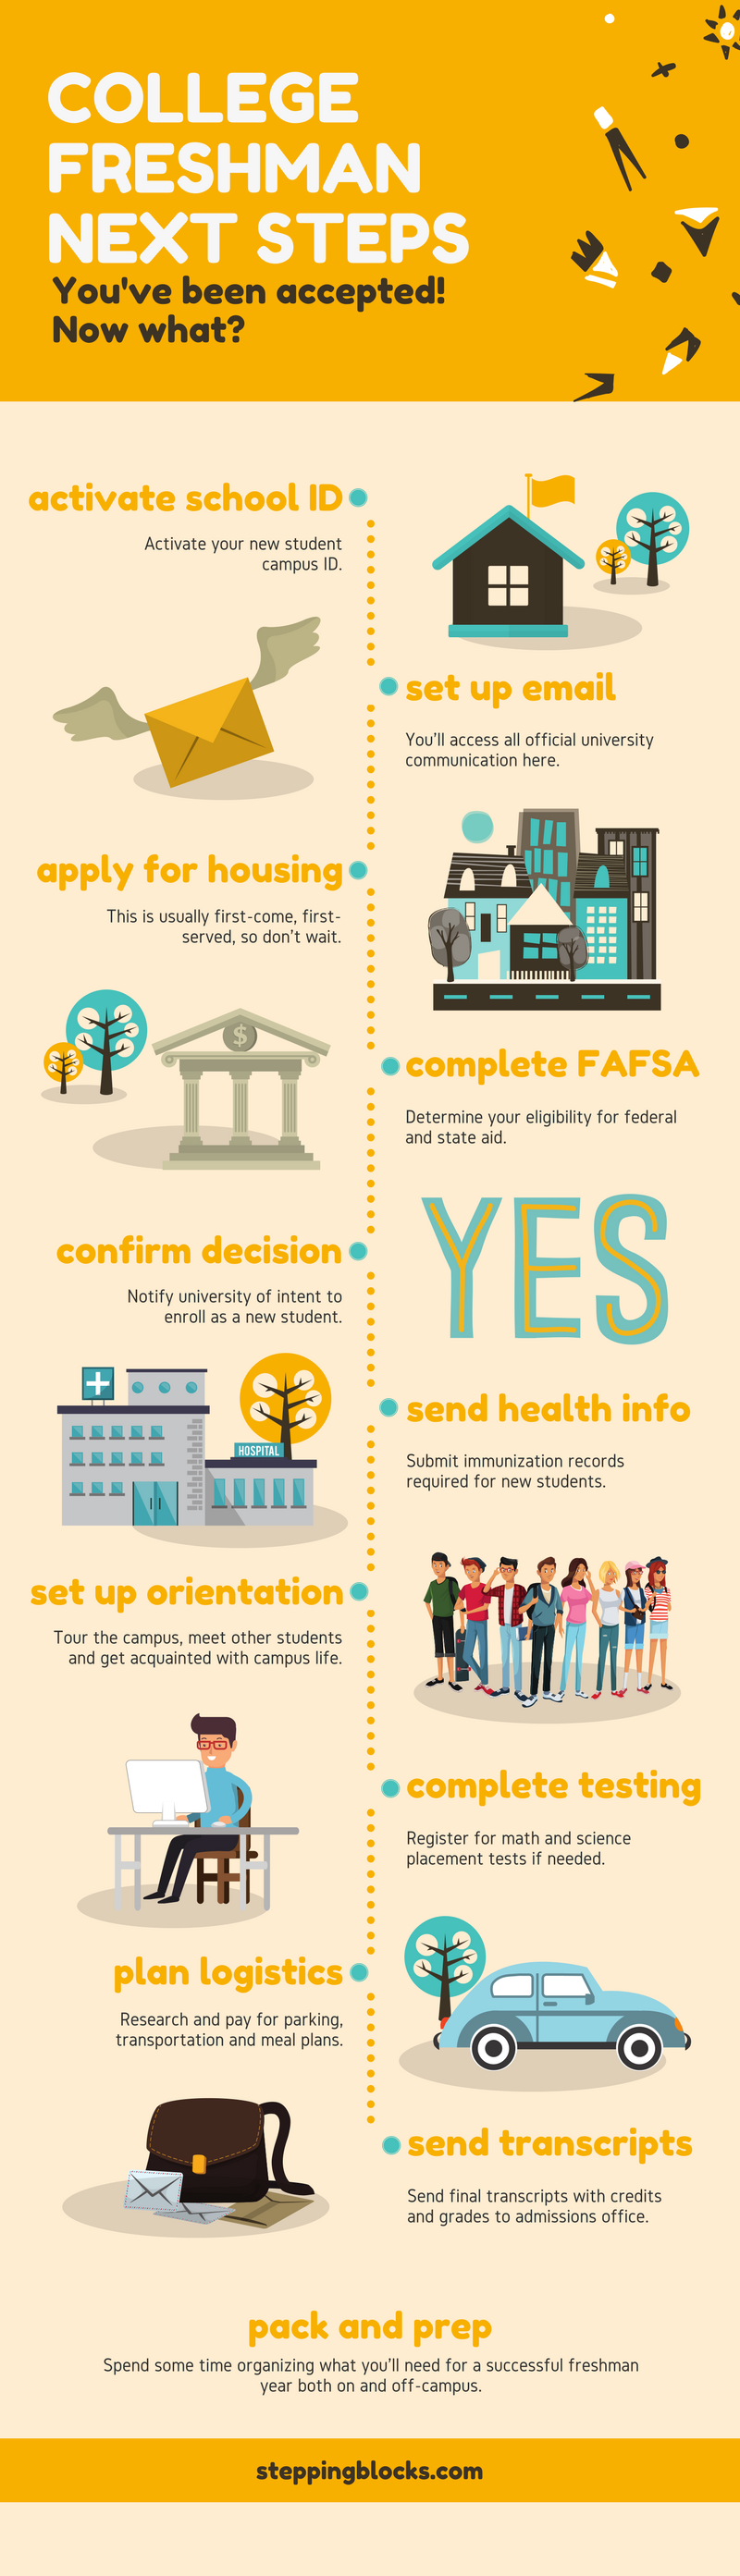 College Freshman Next Steps Infographic 2.png